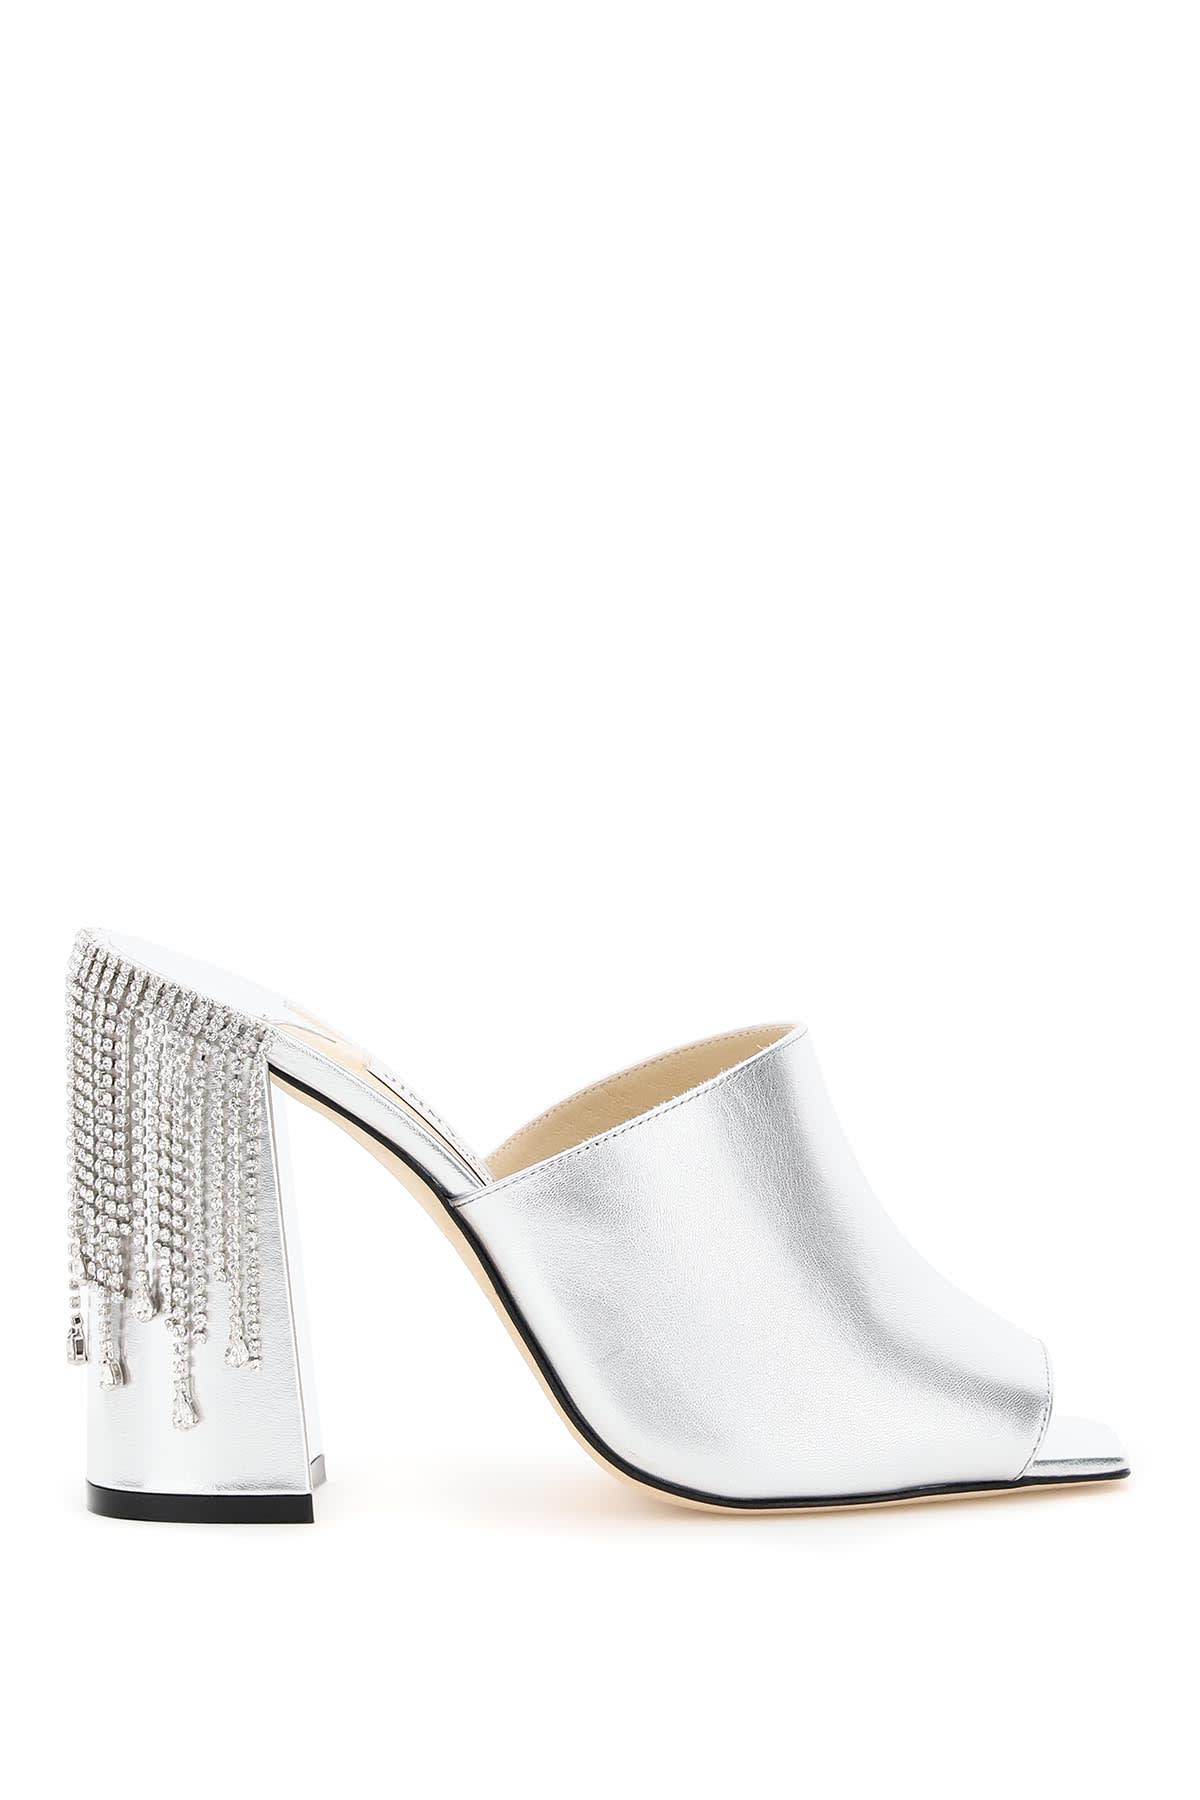 Buy Jimmy Choo Baia Mules 100 With Crystal Drape online, shop Jimmy Choo shoes with free shipping